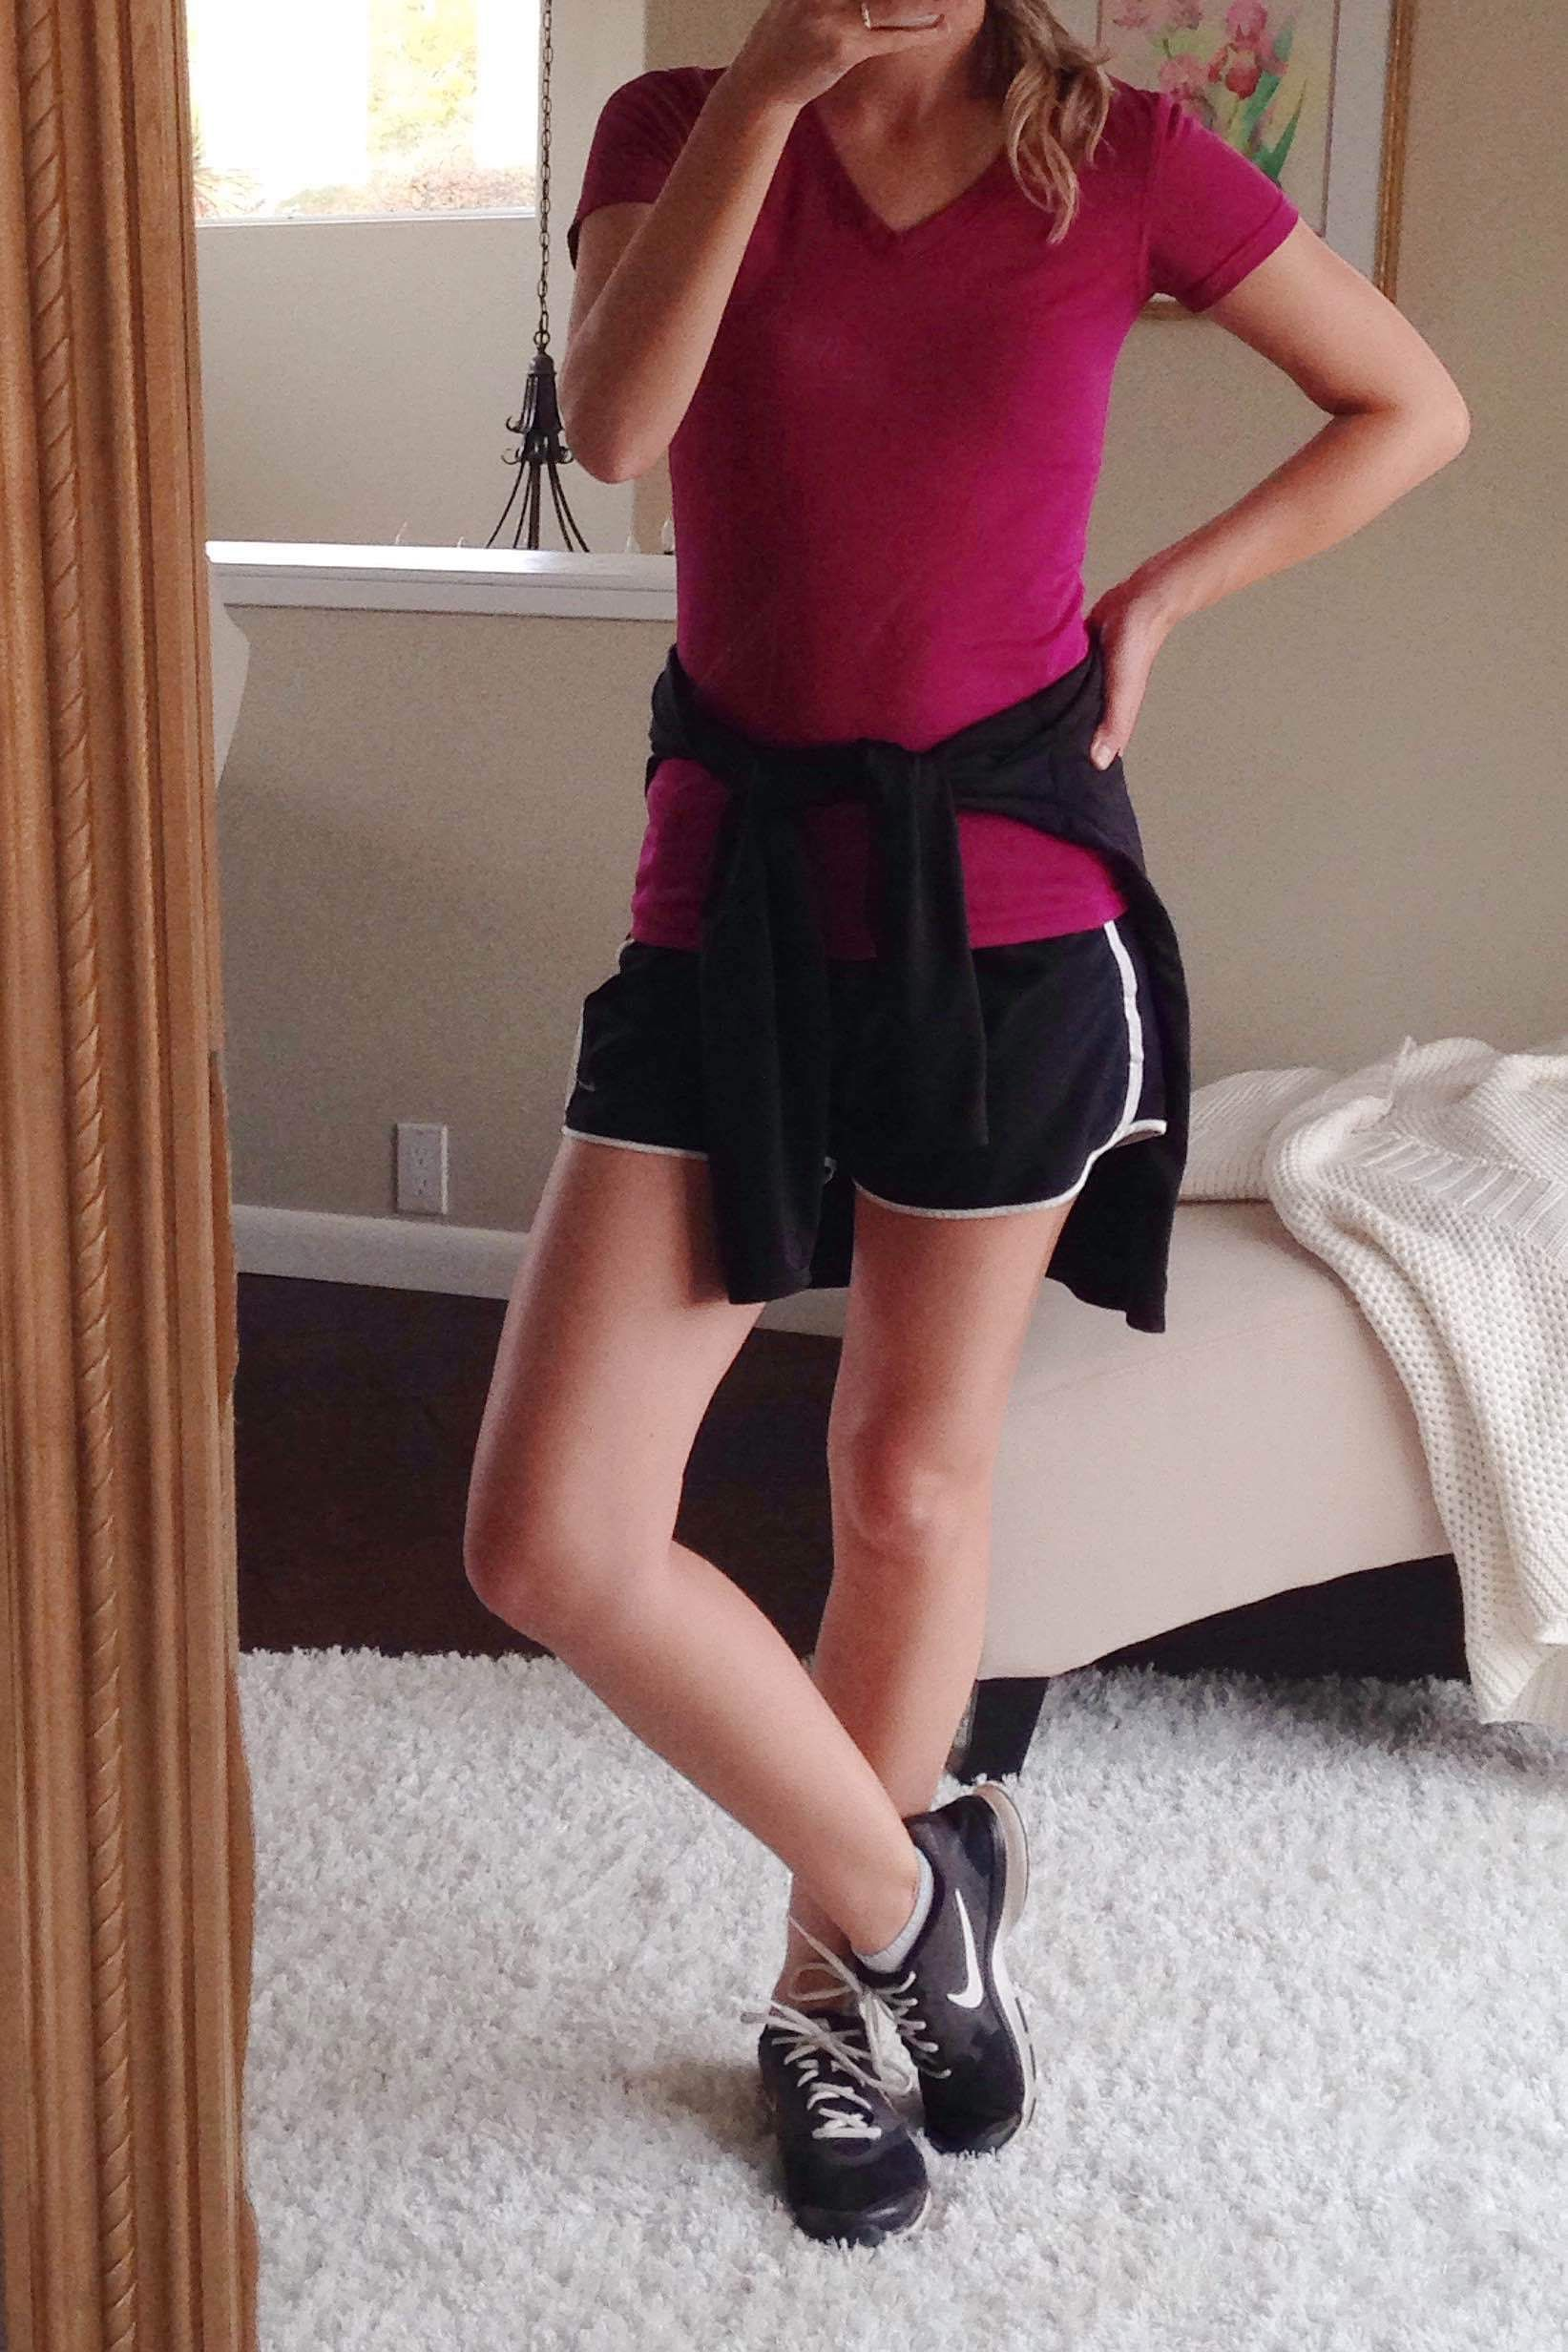 outfit ideas for moms nike running shorts sneakers work-out t-shirt